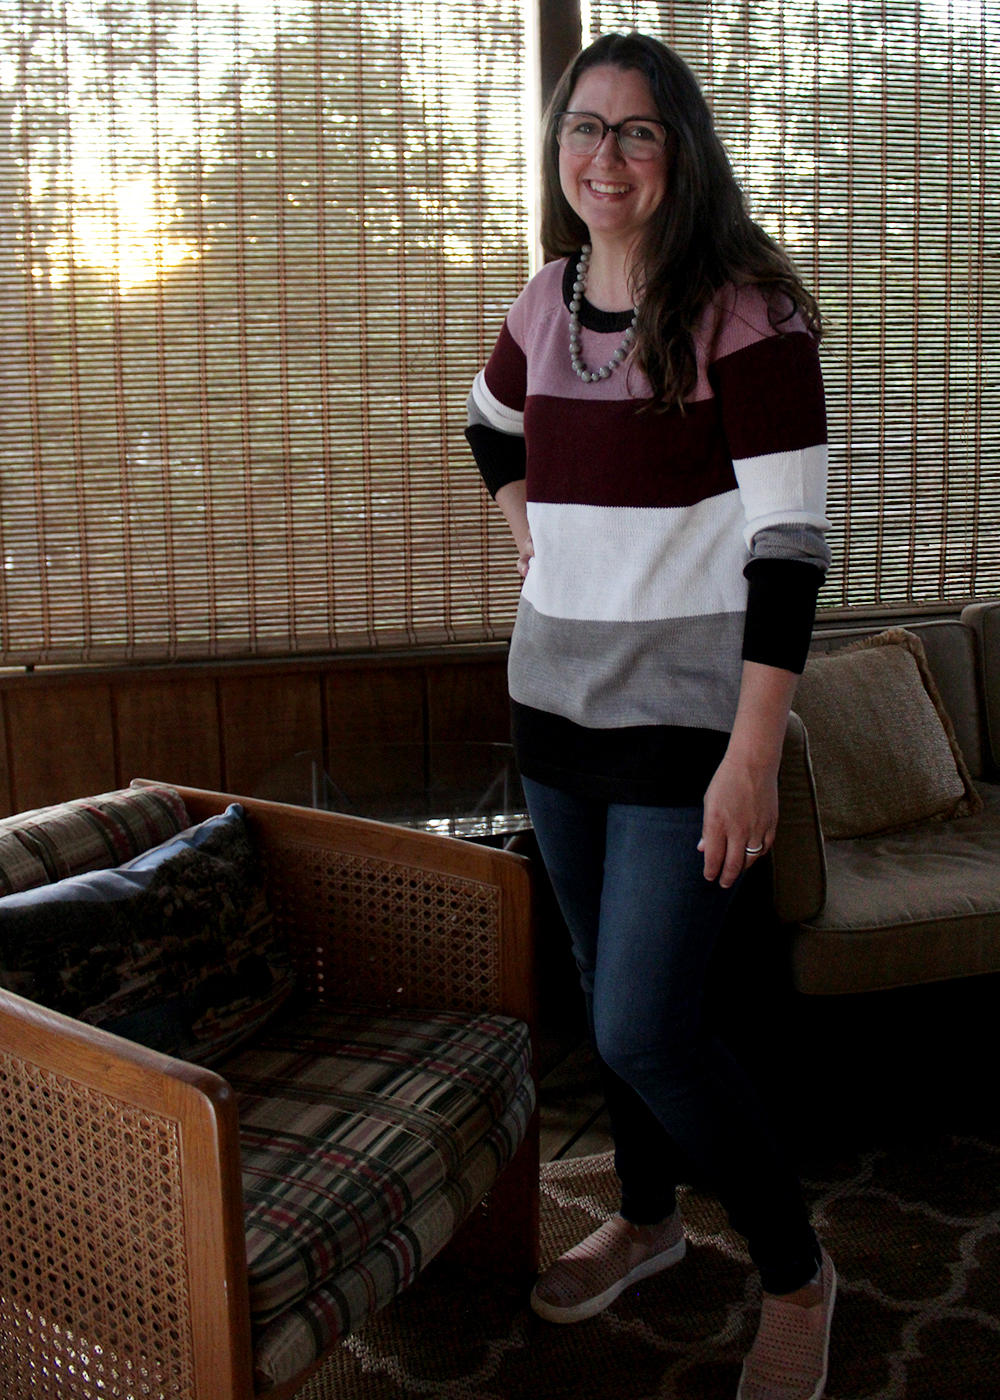 Striped sweater from Stitch Fix. Fall fashion ideas